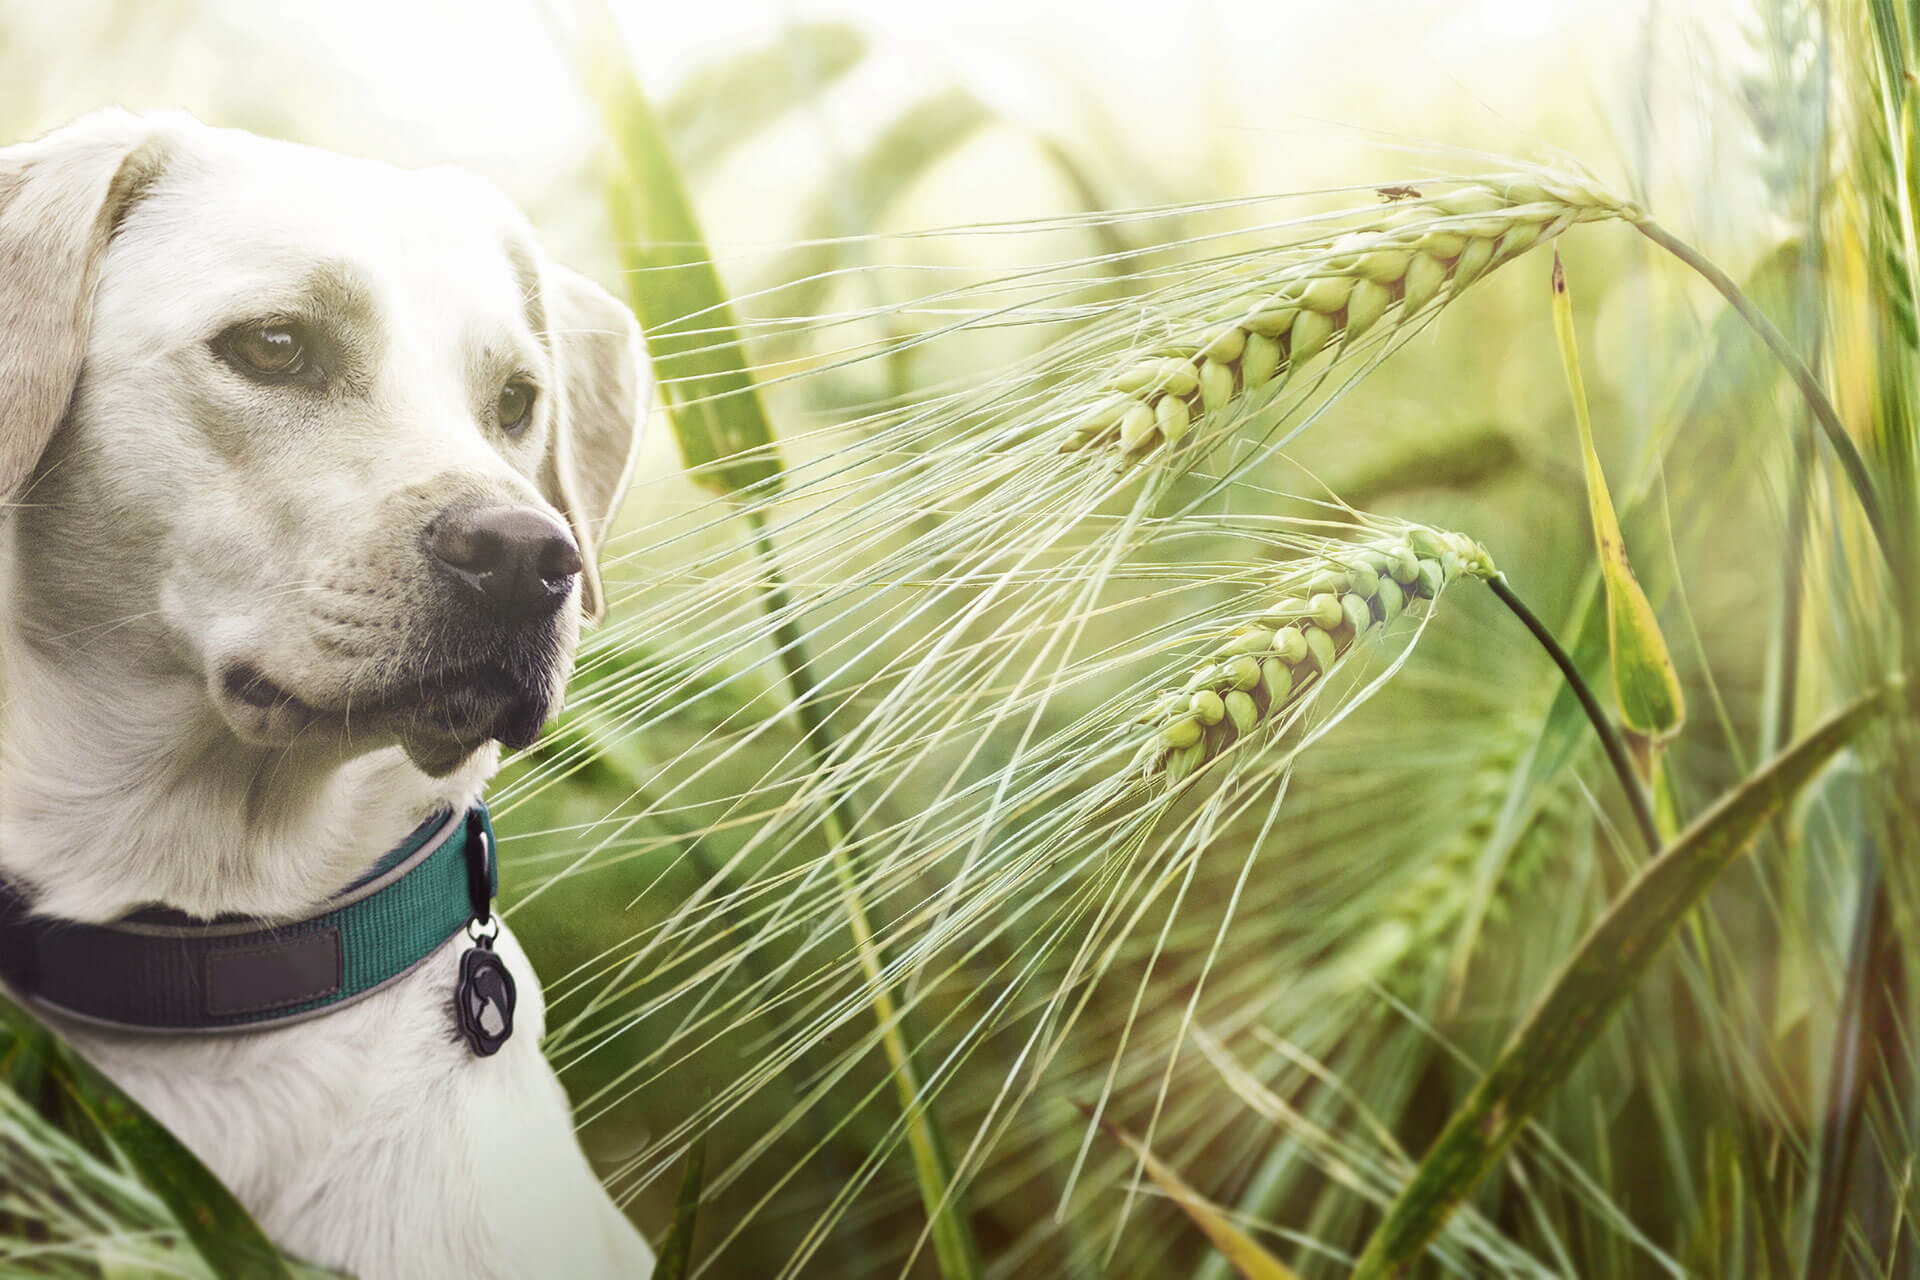 Grass awns in dog: Why is it dangerous? | Tractive